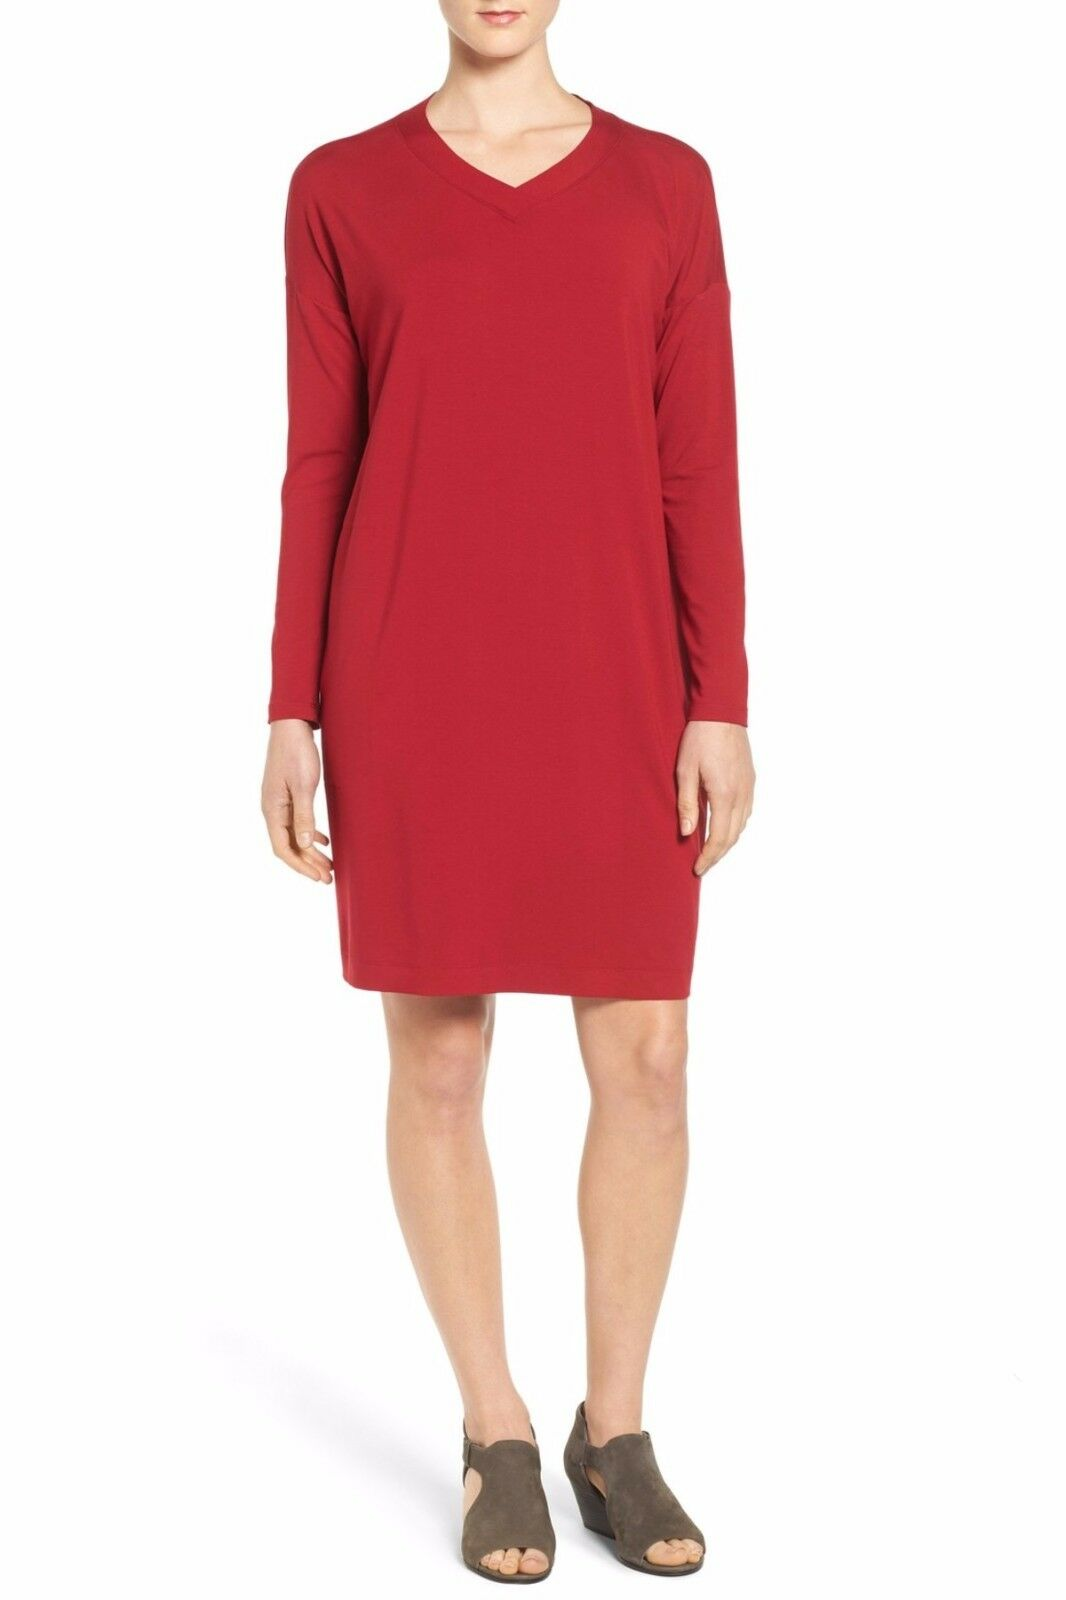 NEW Eileen Fisher Sz M M V-Neck Stretch Shift Dress Jersey Boxy Medium  178